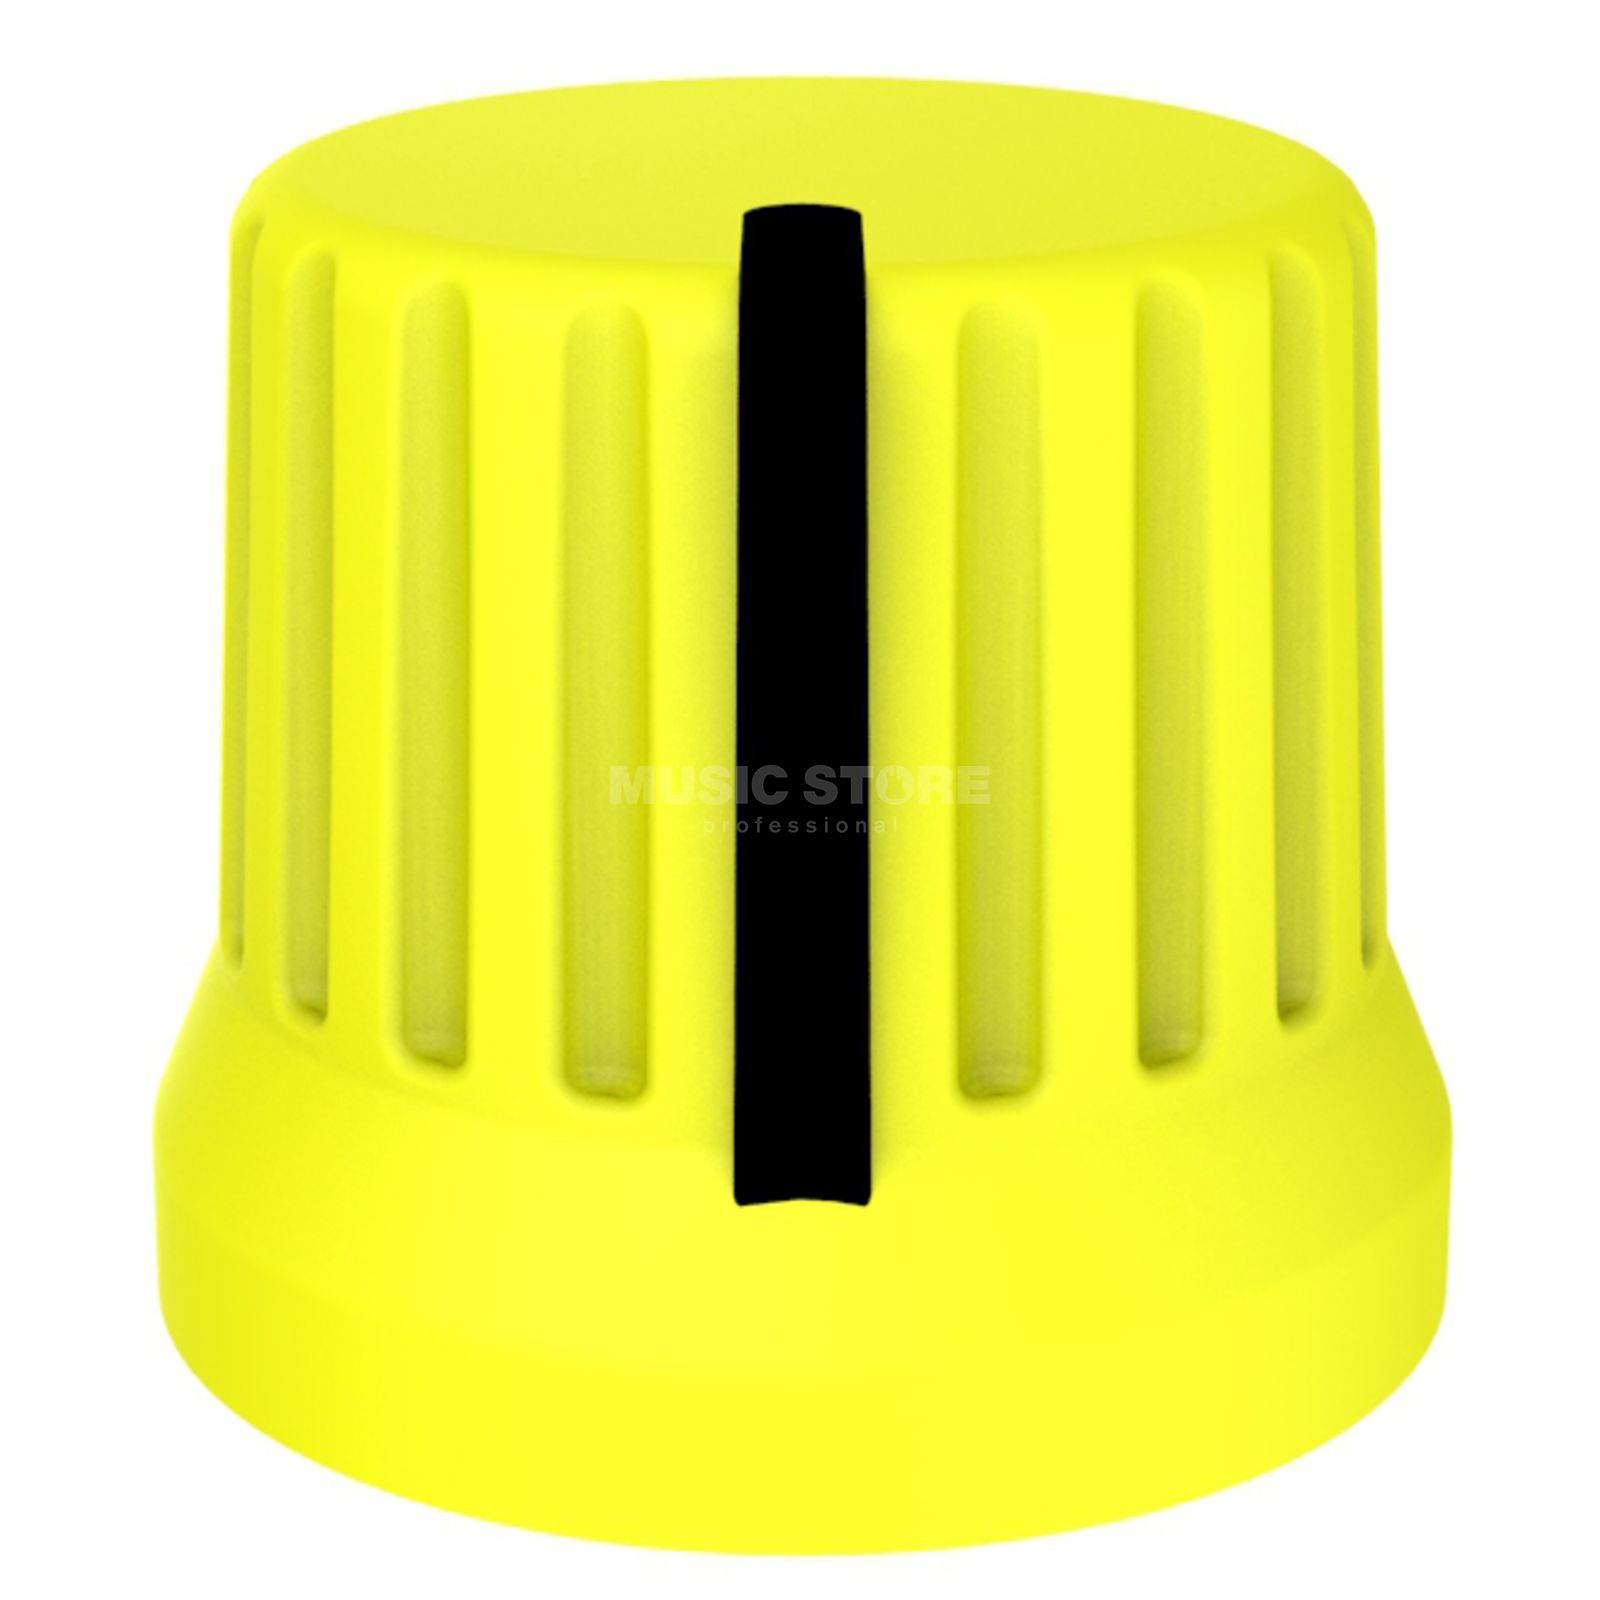 DJ TECHTOOLS Chroma Caps Fatty Knob yellow  Product Image